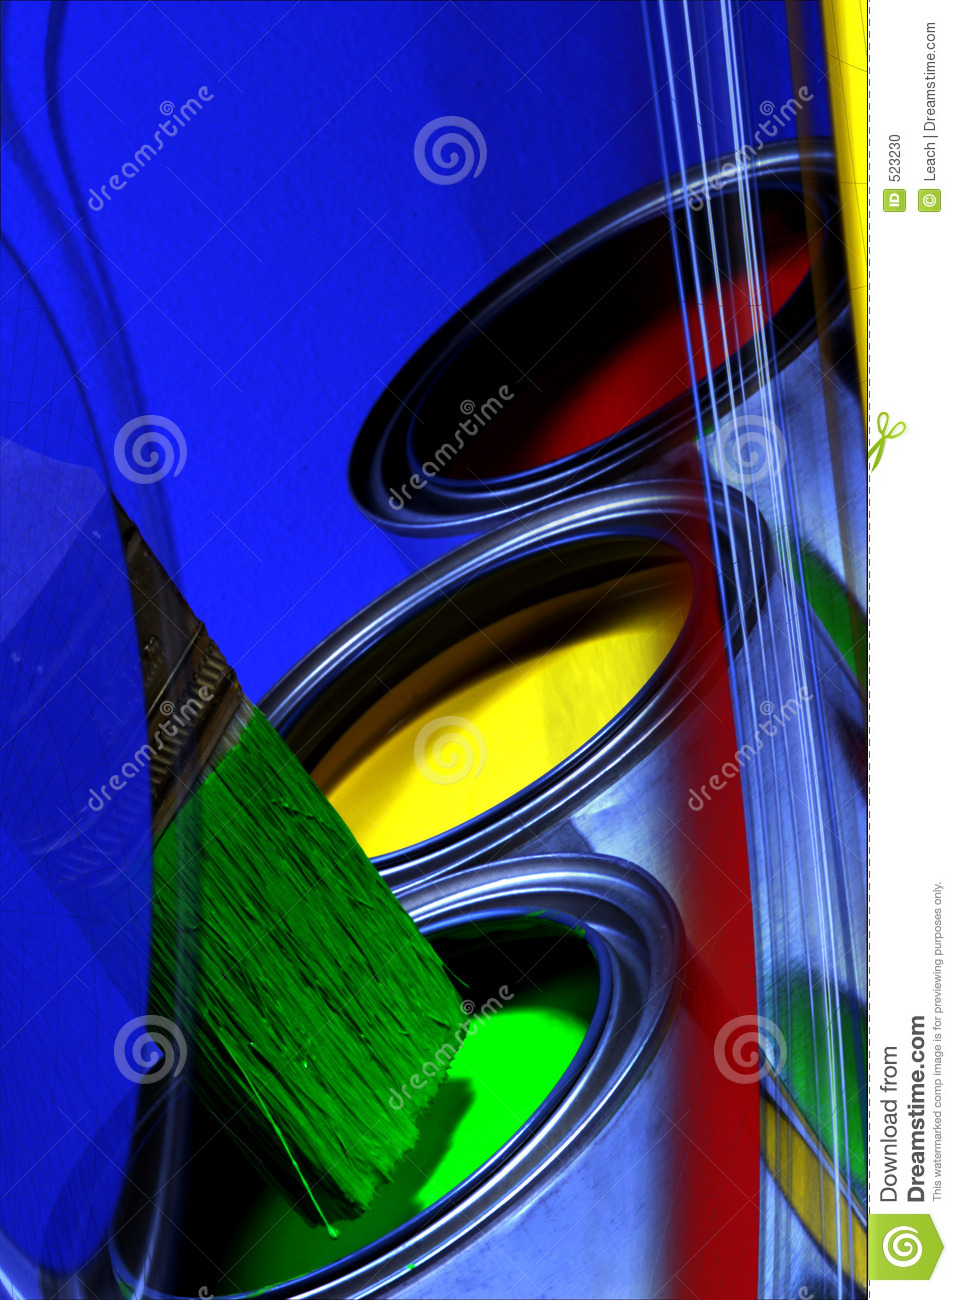 Abstract Colorful Cans of Paint, Primary Colors & Paint Brush, Y